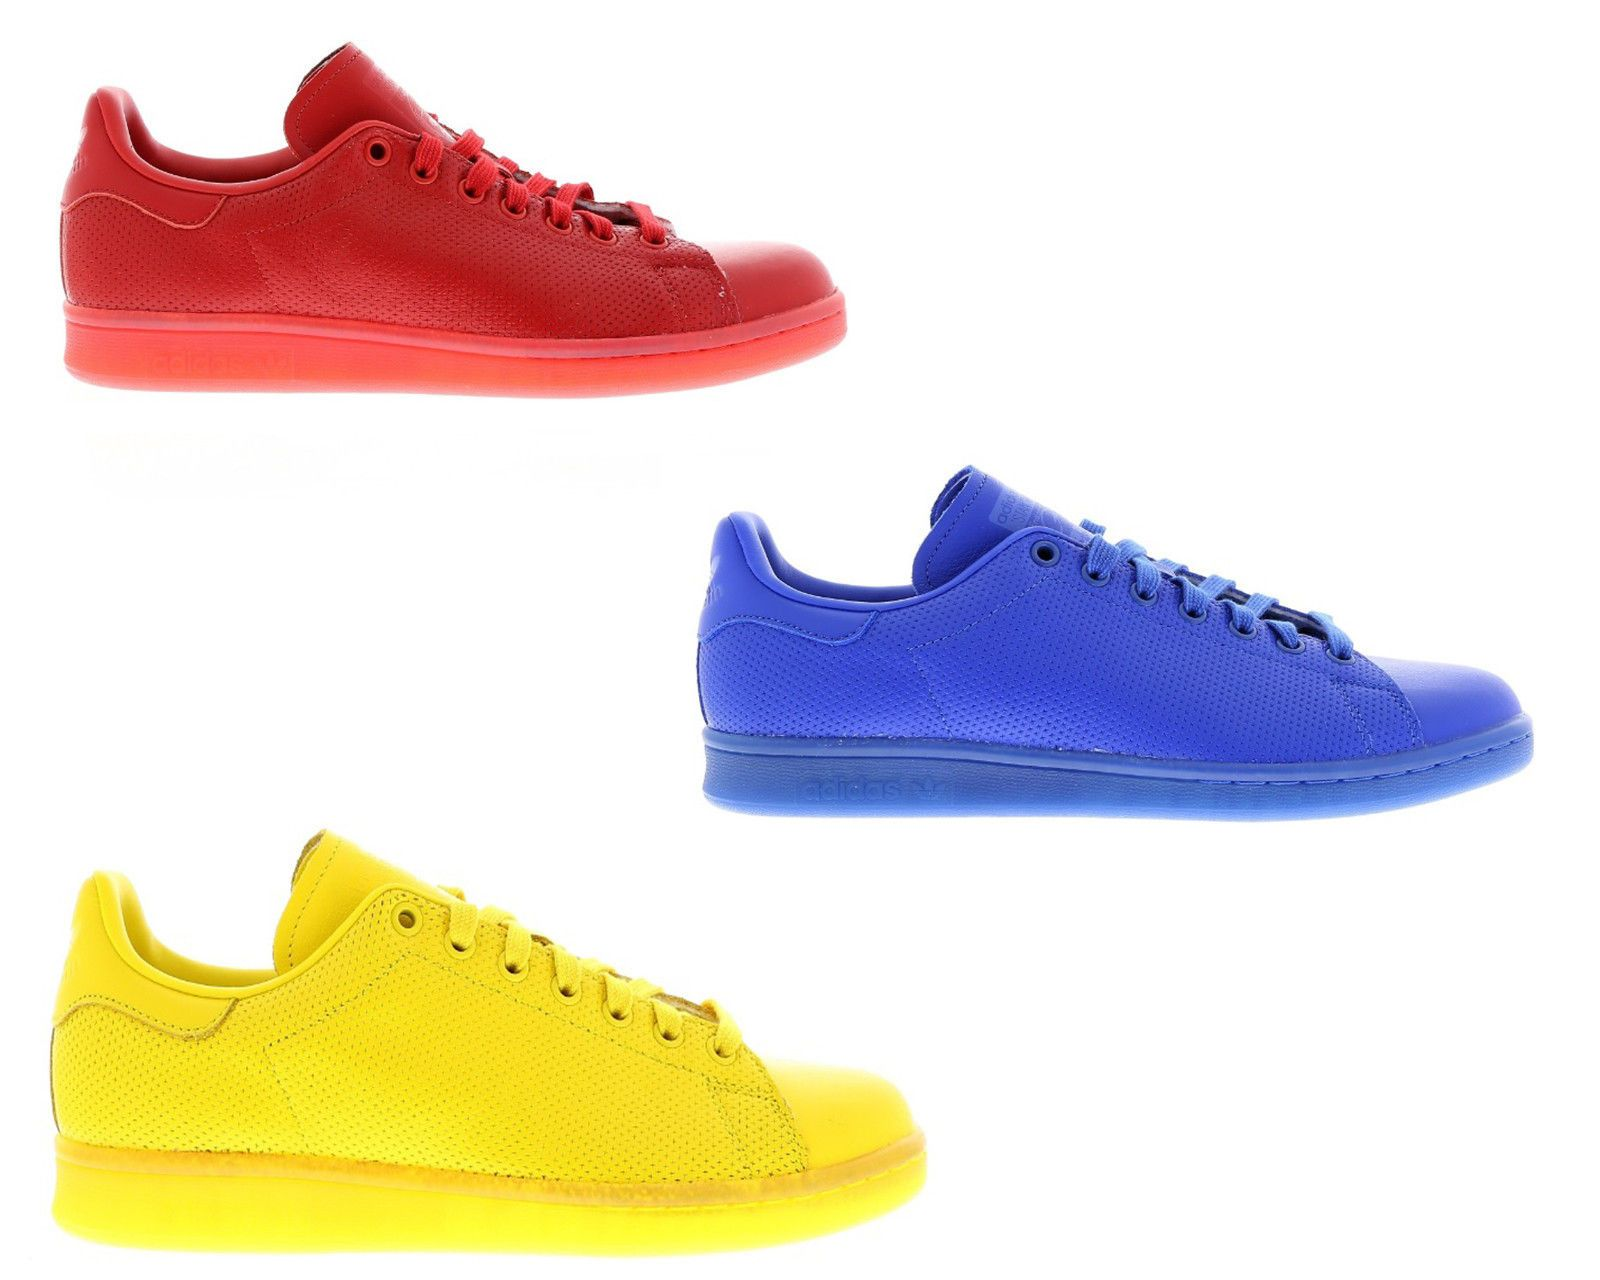 new arrival 41706 b7404 Original adidas stan smith adicolor leather blue red yellow ...